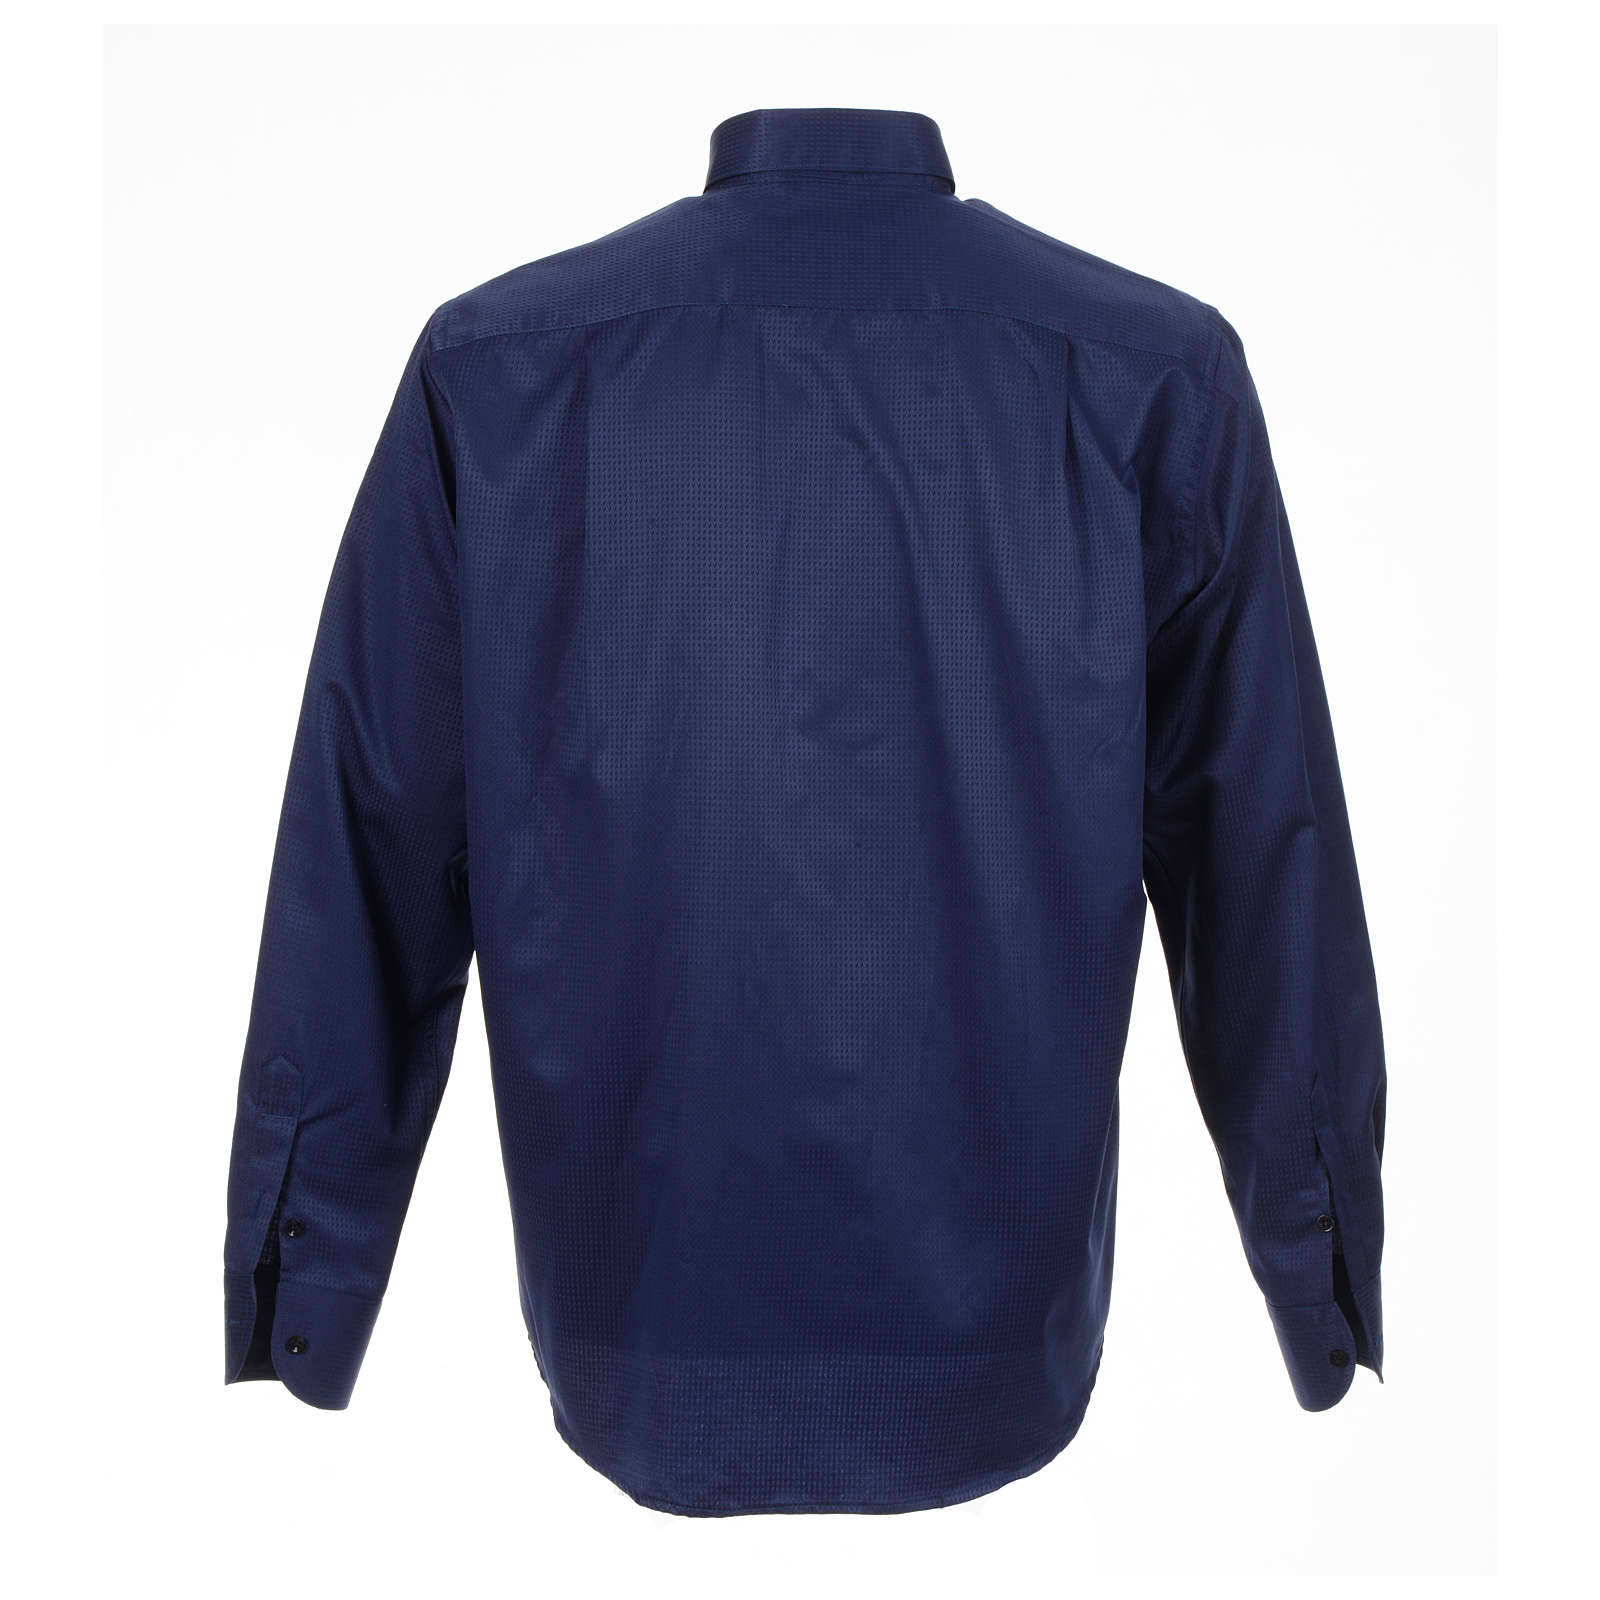 Long sleeve tab collar shirt, blue jacquard 4